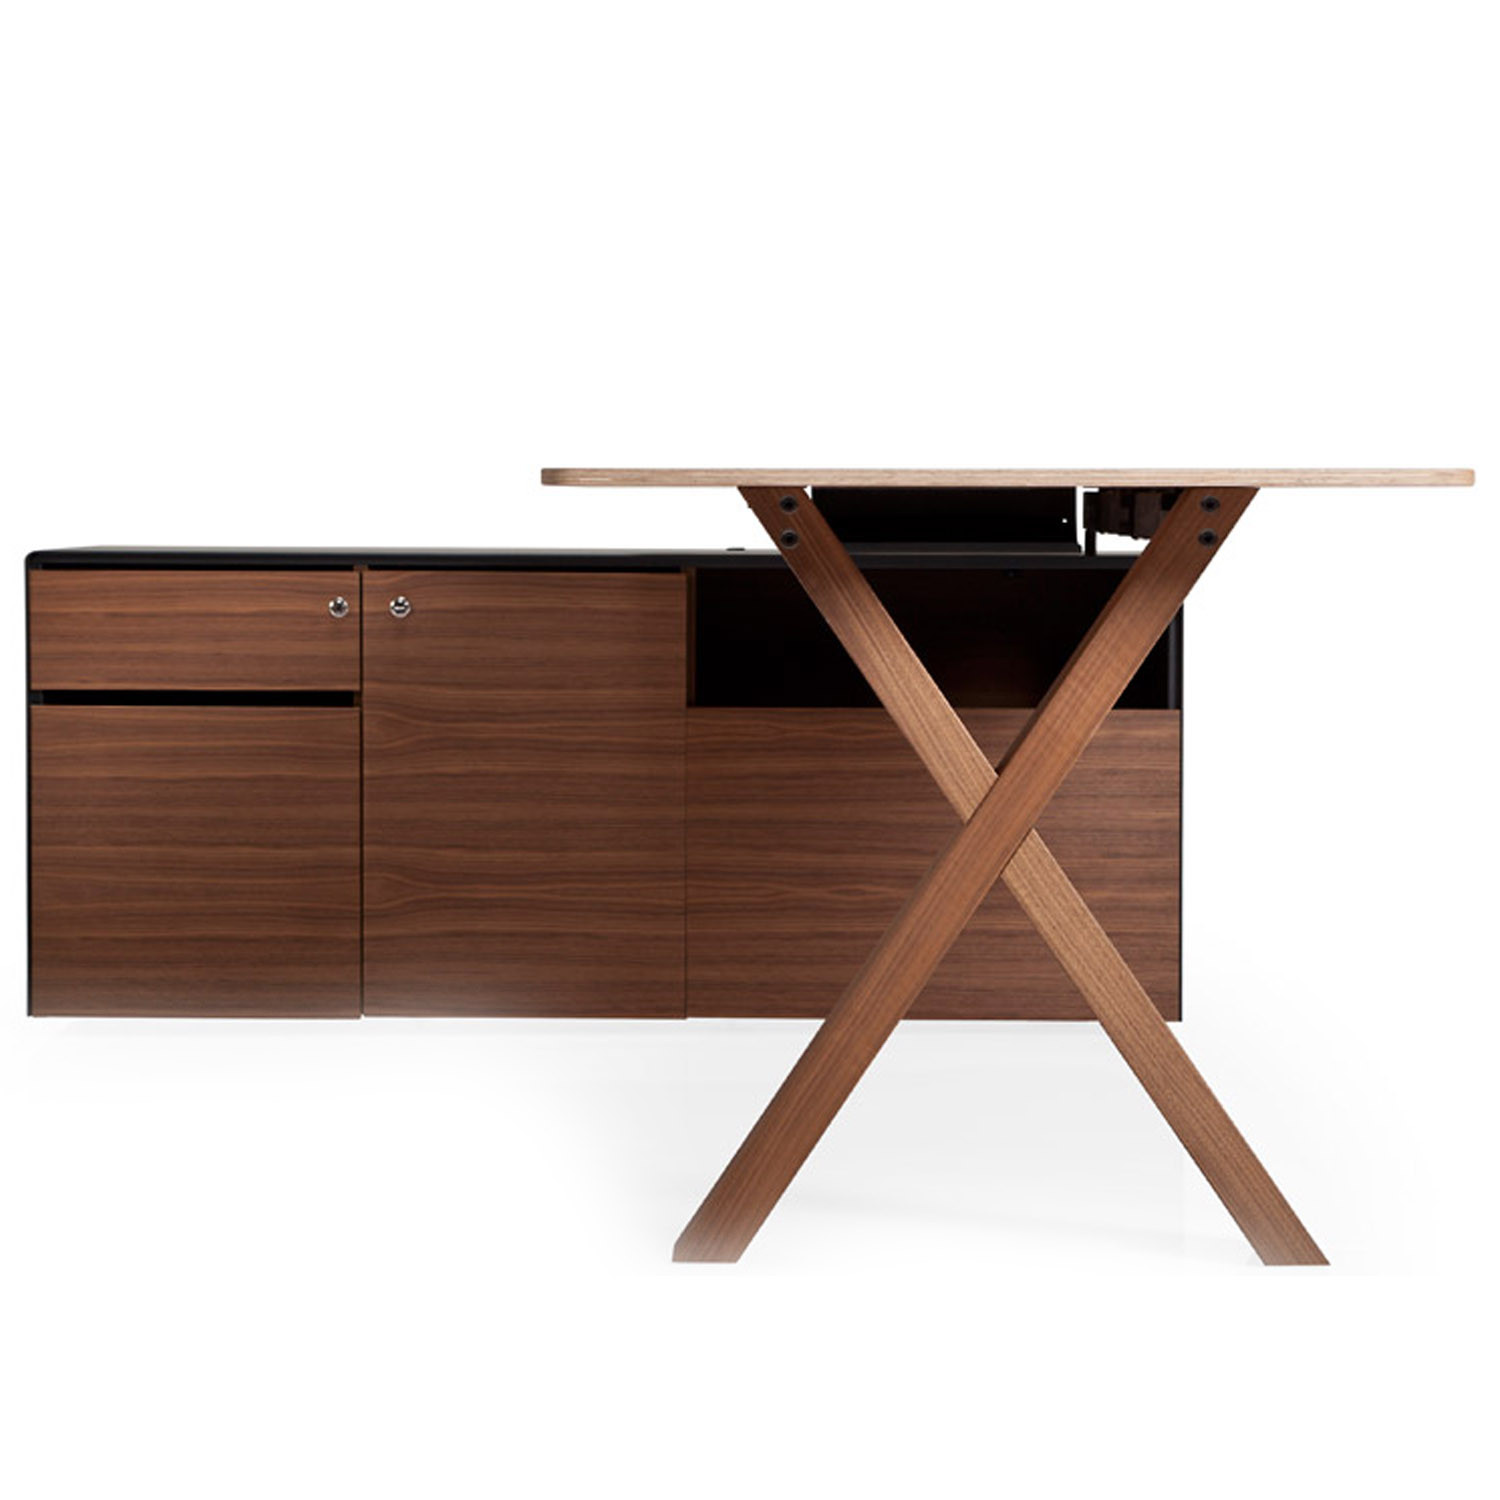 wooden office desks. Perfect Desks Partita Wooden Office Desk And Desks